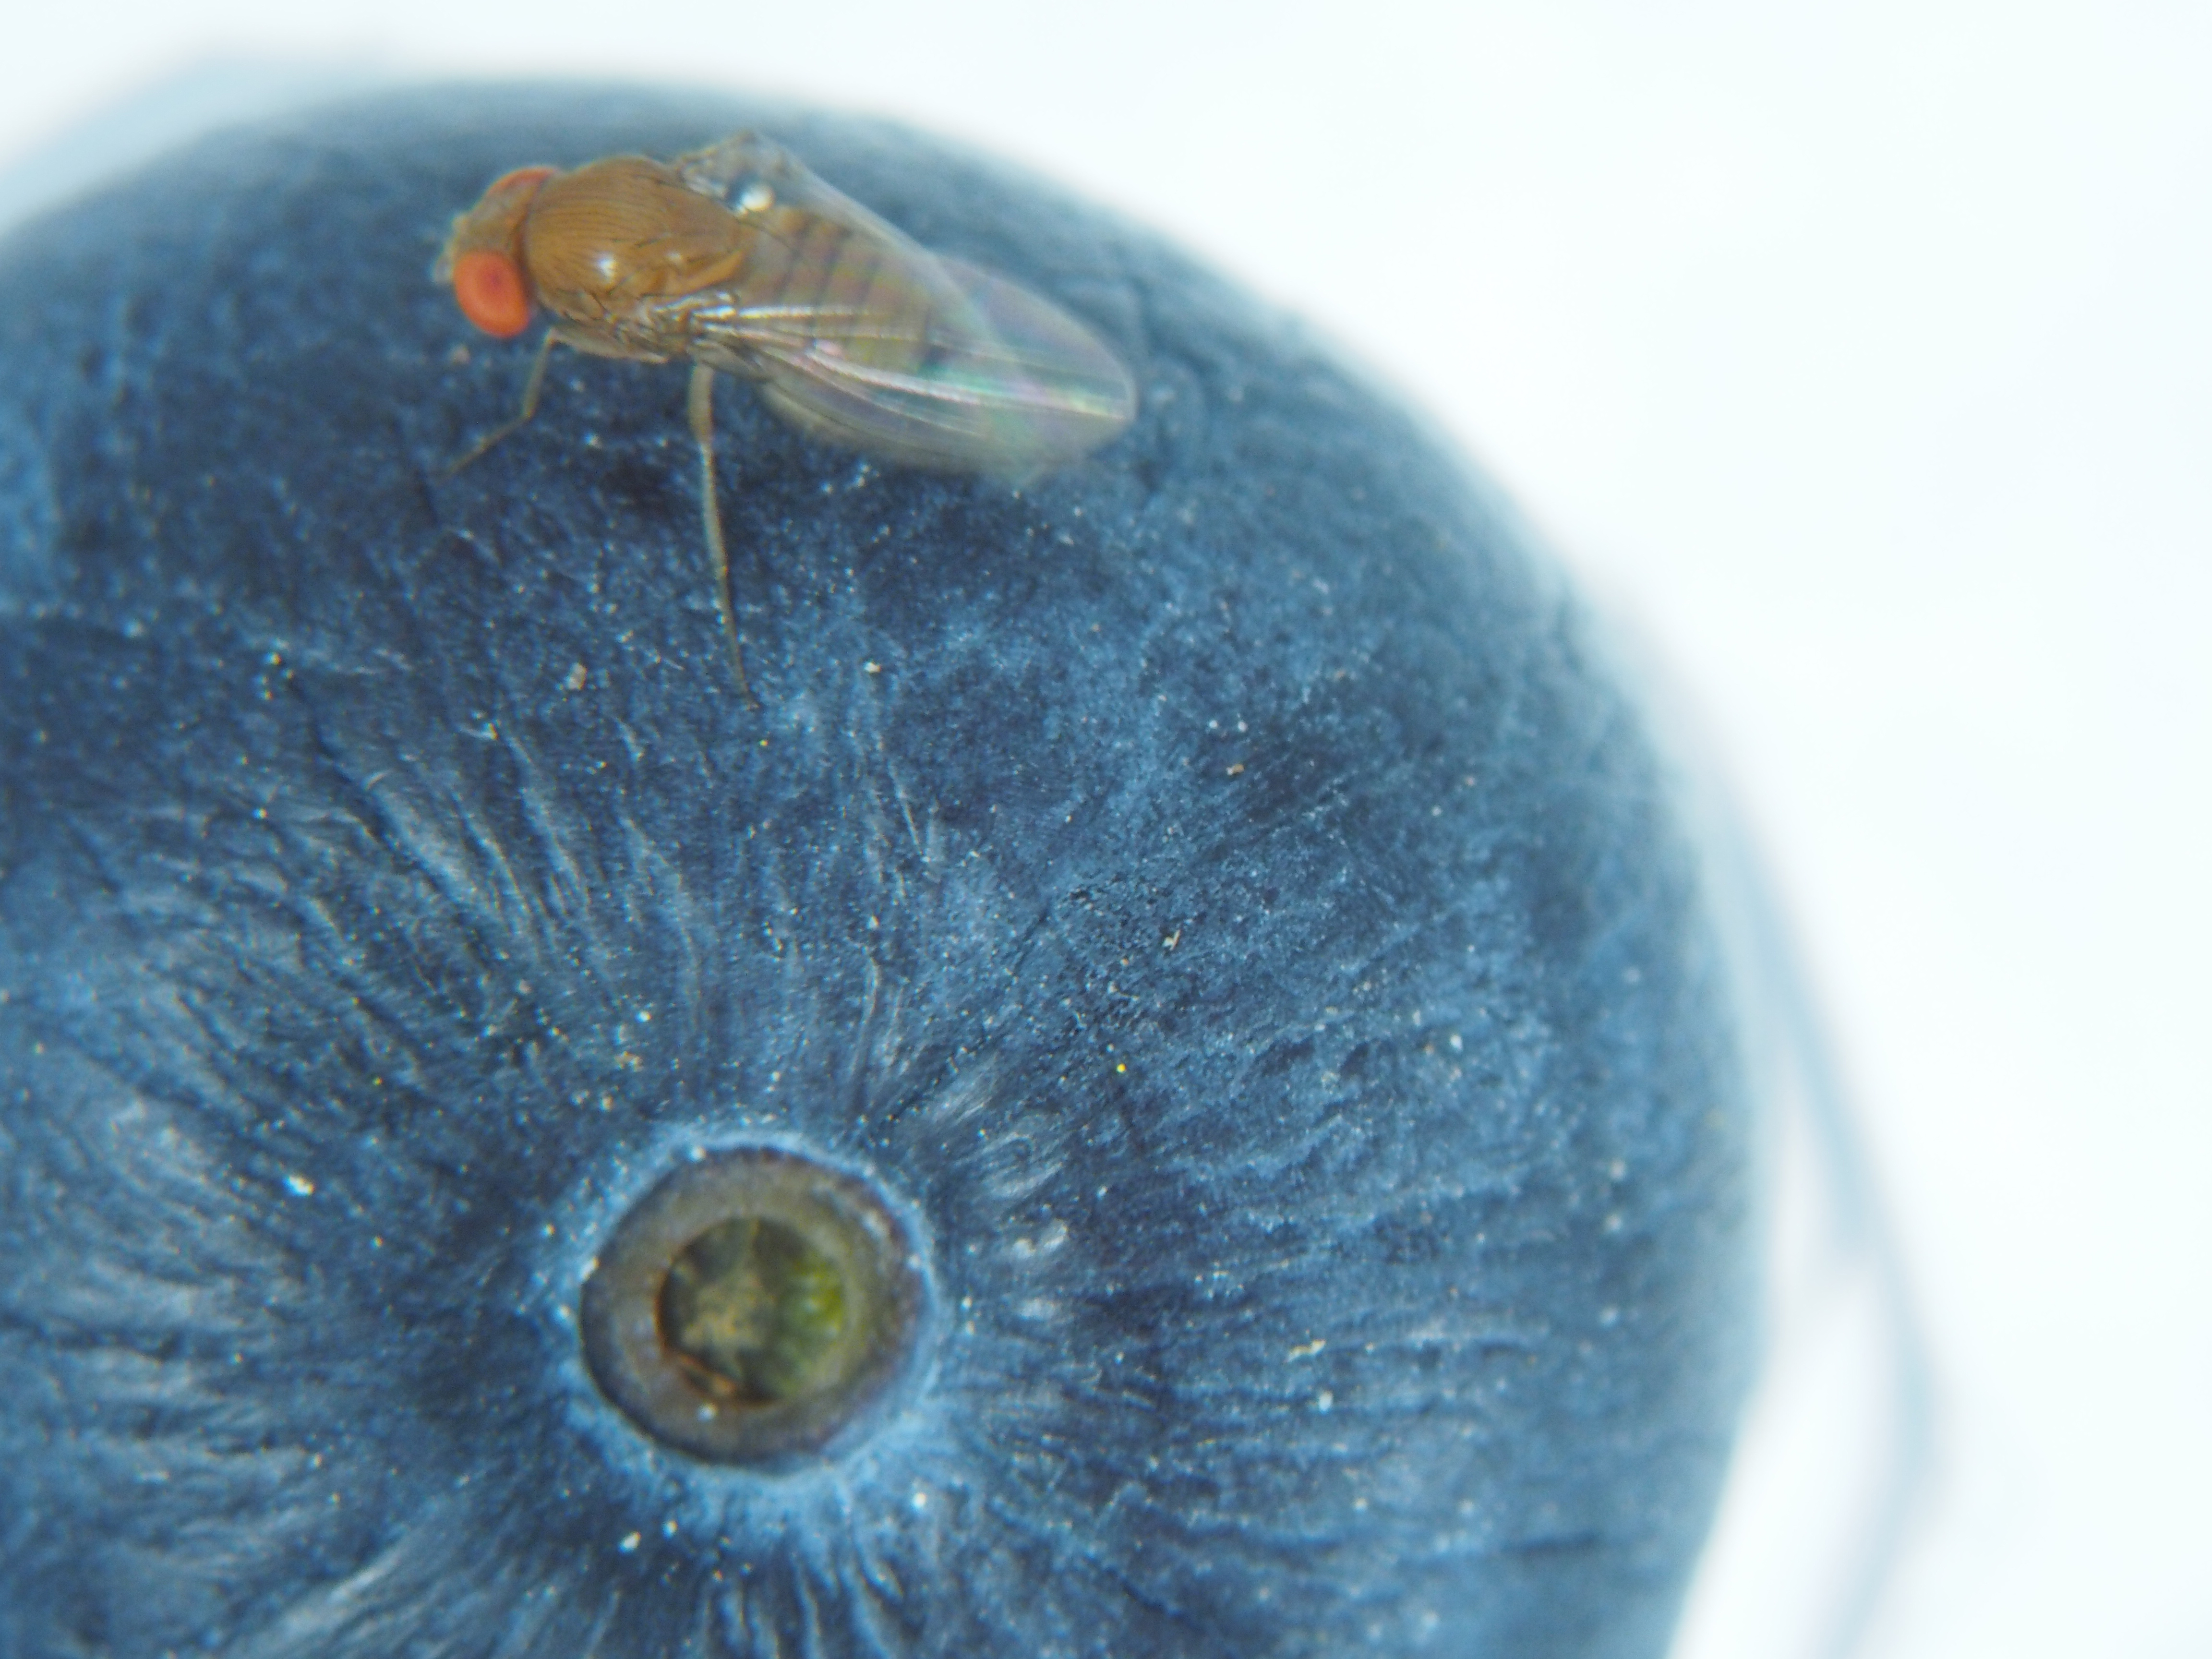 Spotted wing drosophila deposit eggs into ripe blueberries and leave the fruit unmarketable. Buyers will not accept blueberries with SWD damage.